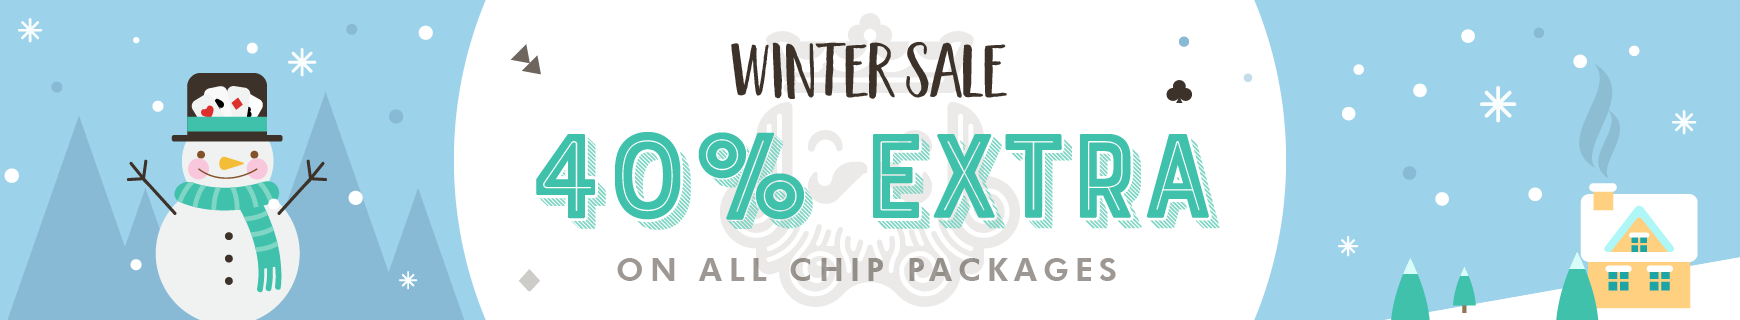 Winter sale %28870 x 160%29 2x